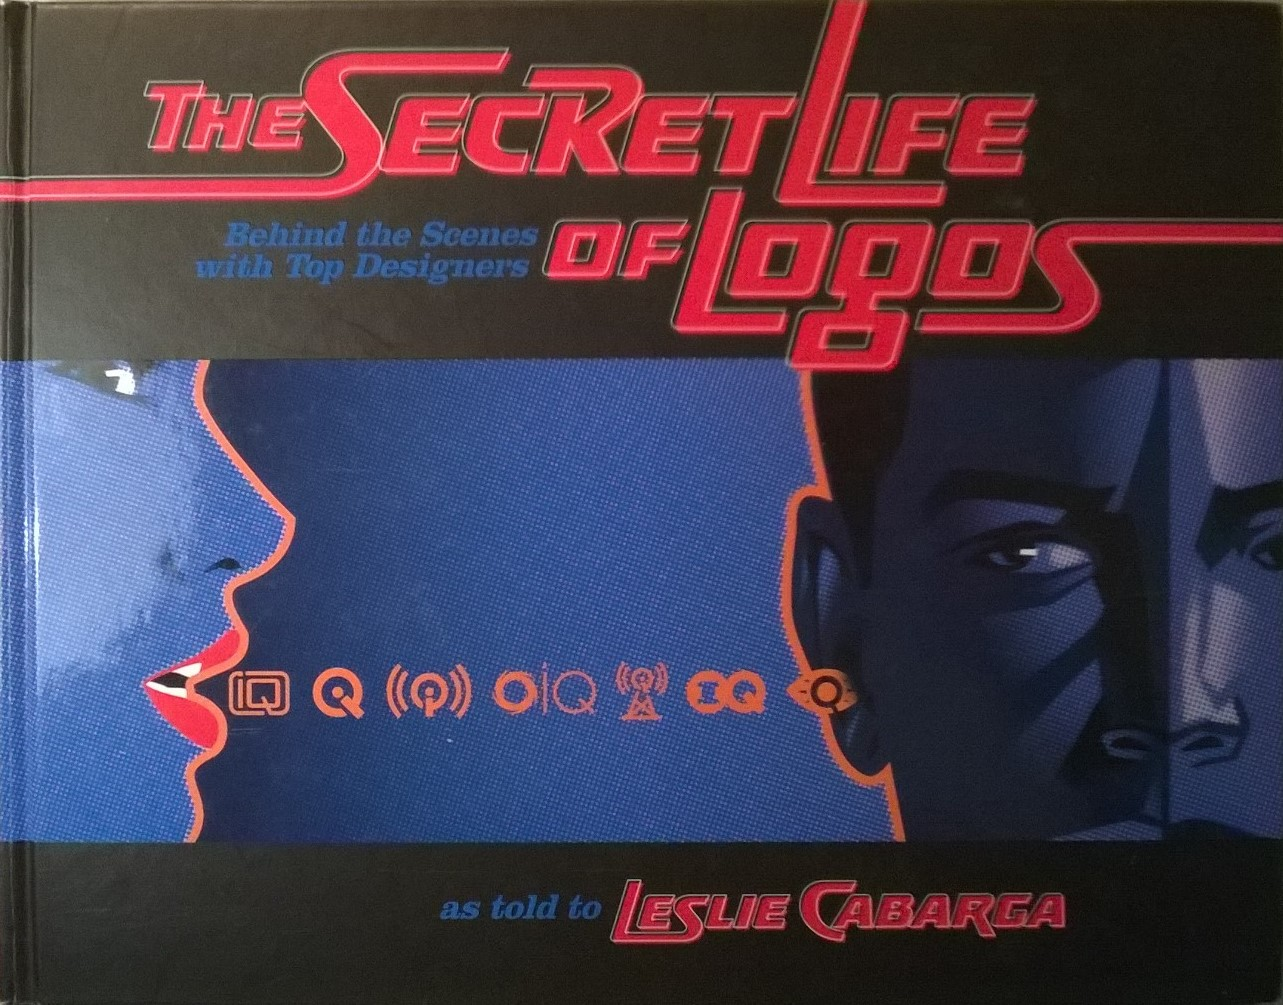 Cabarga, Leslie The Secret Life of Logos: Behind the Scenes with Top Designers